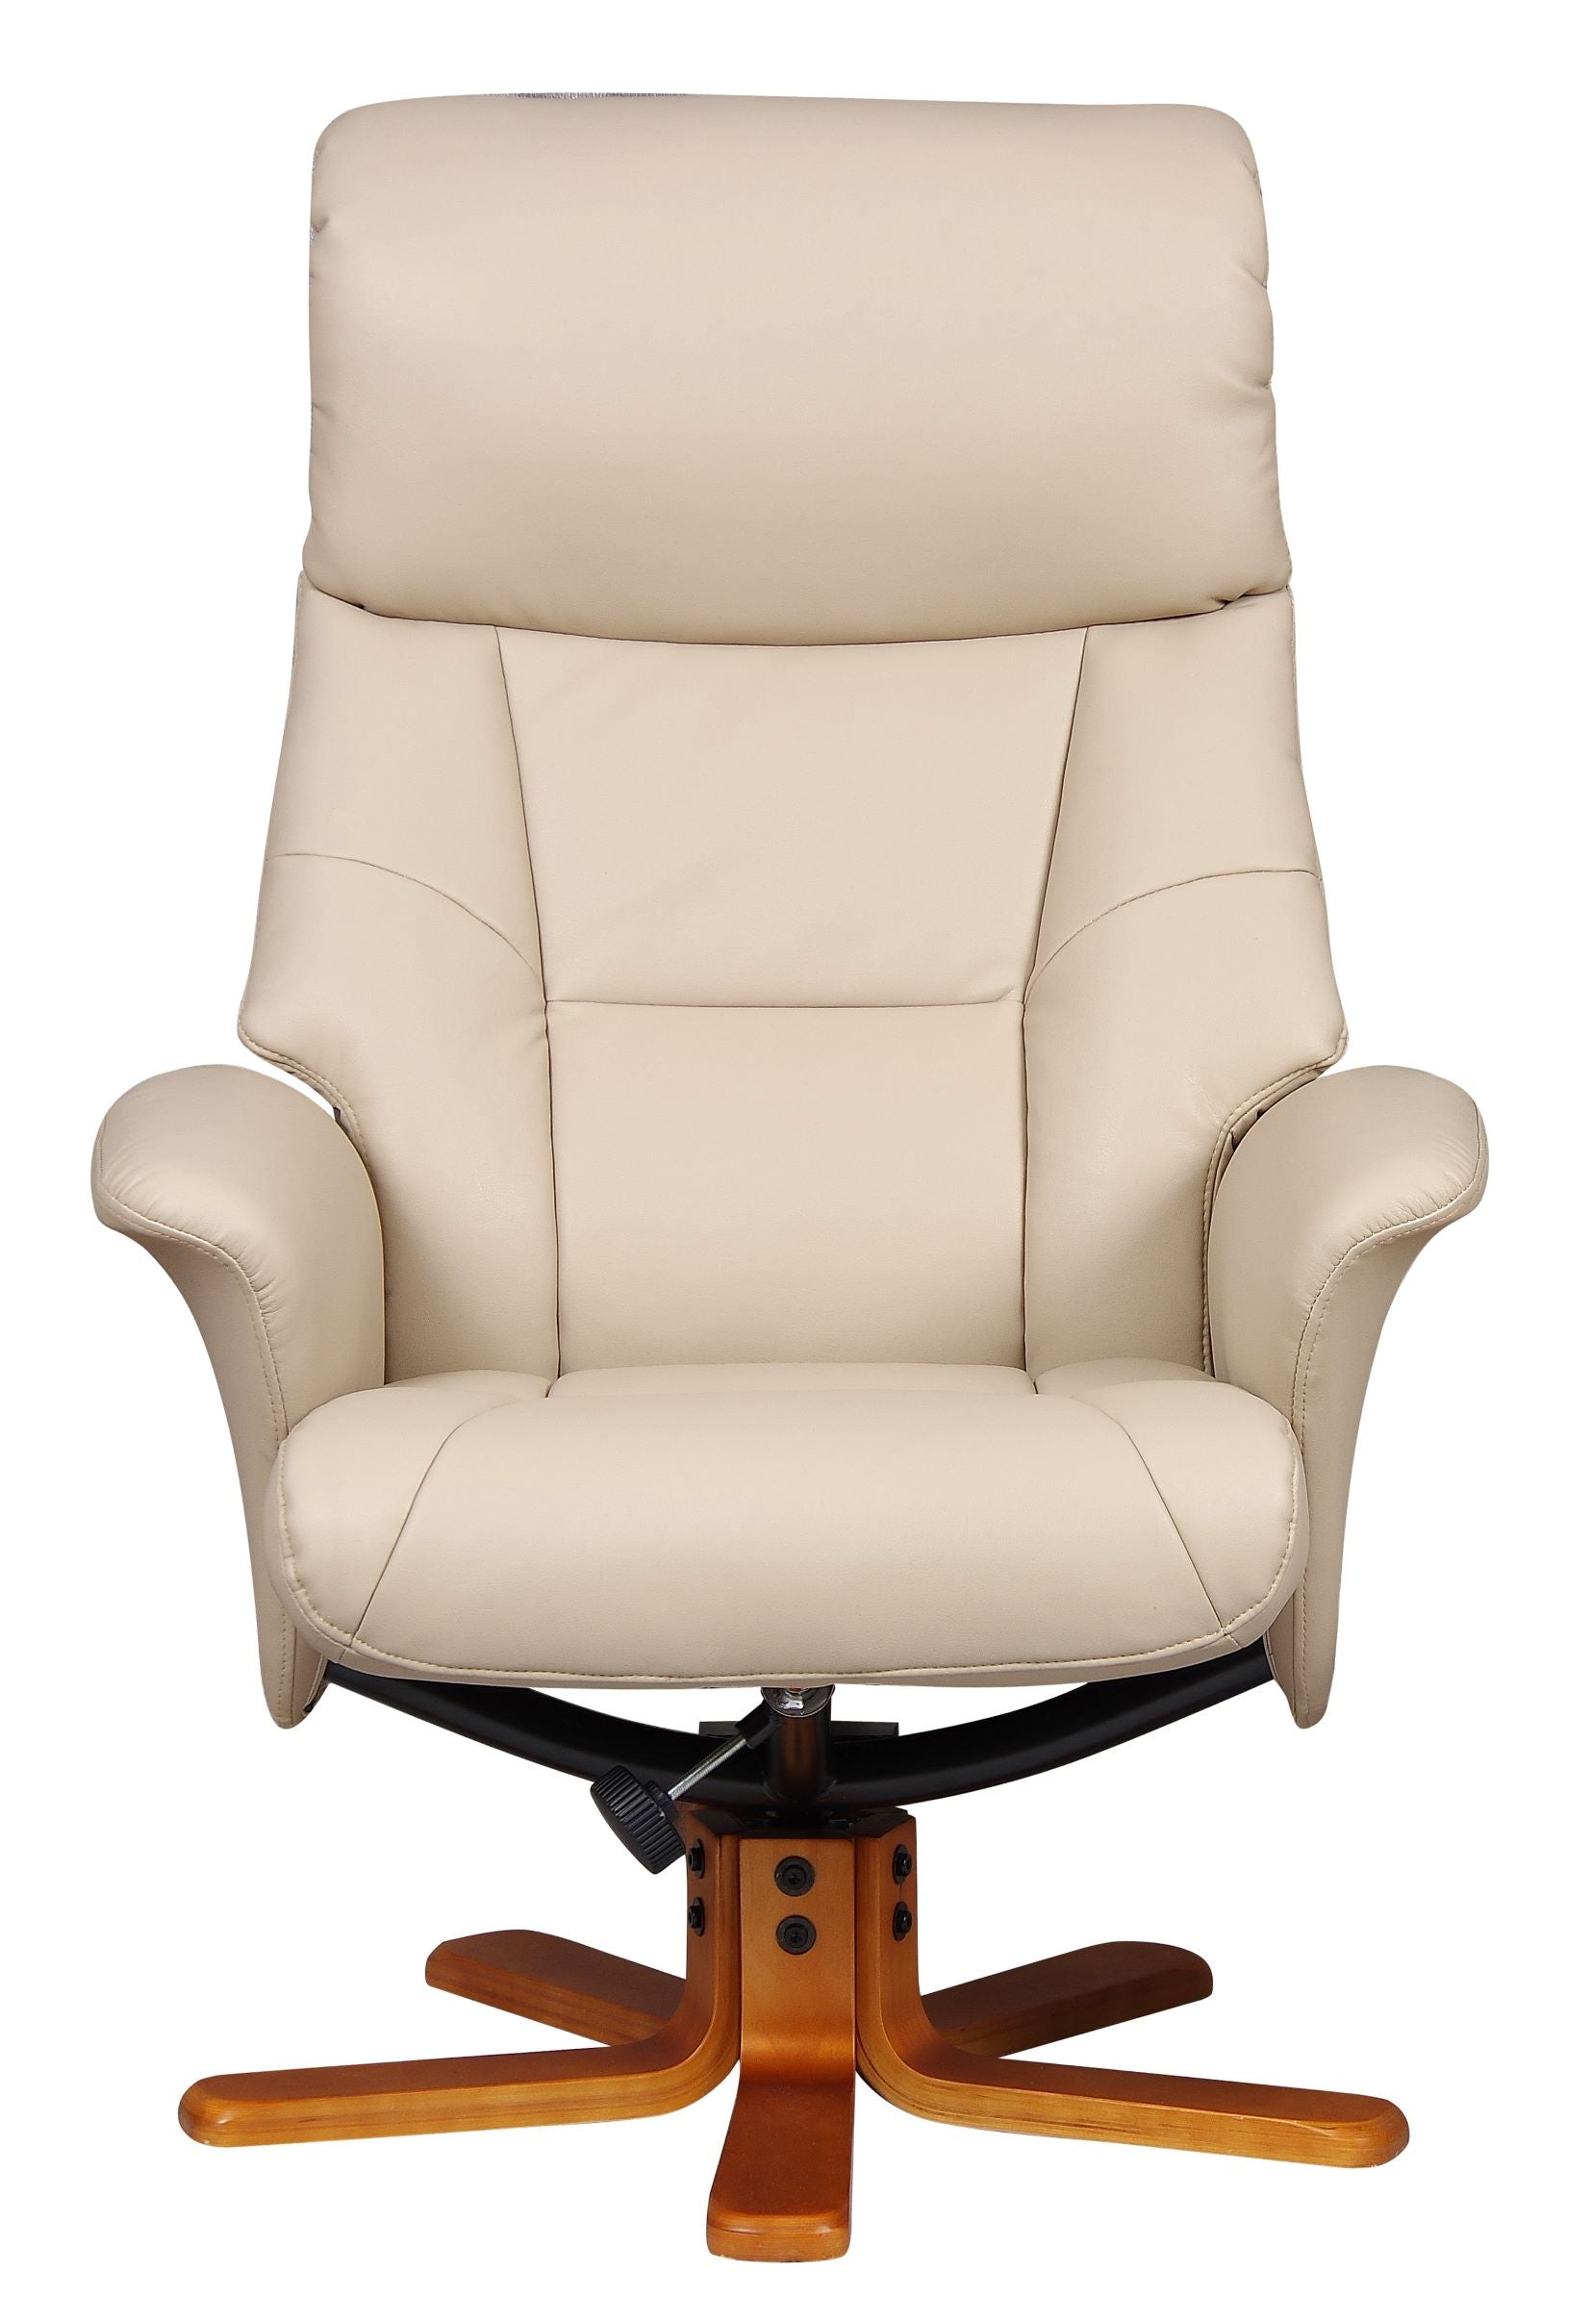 Lisbon Swivel Chair In a Choice Of Finishes